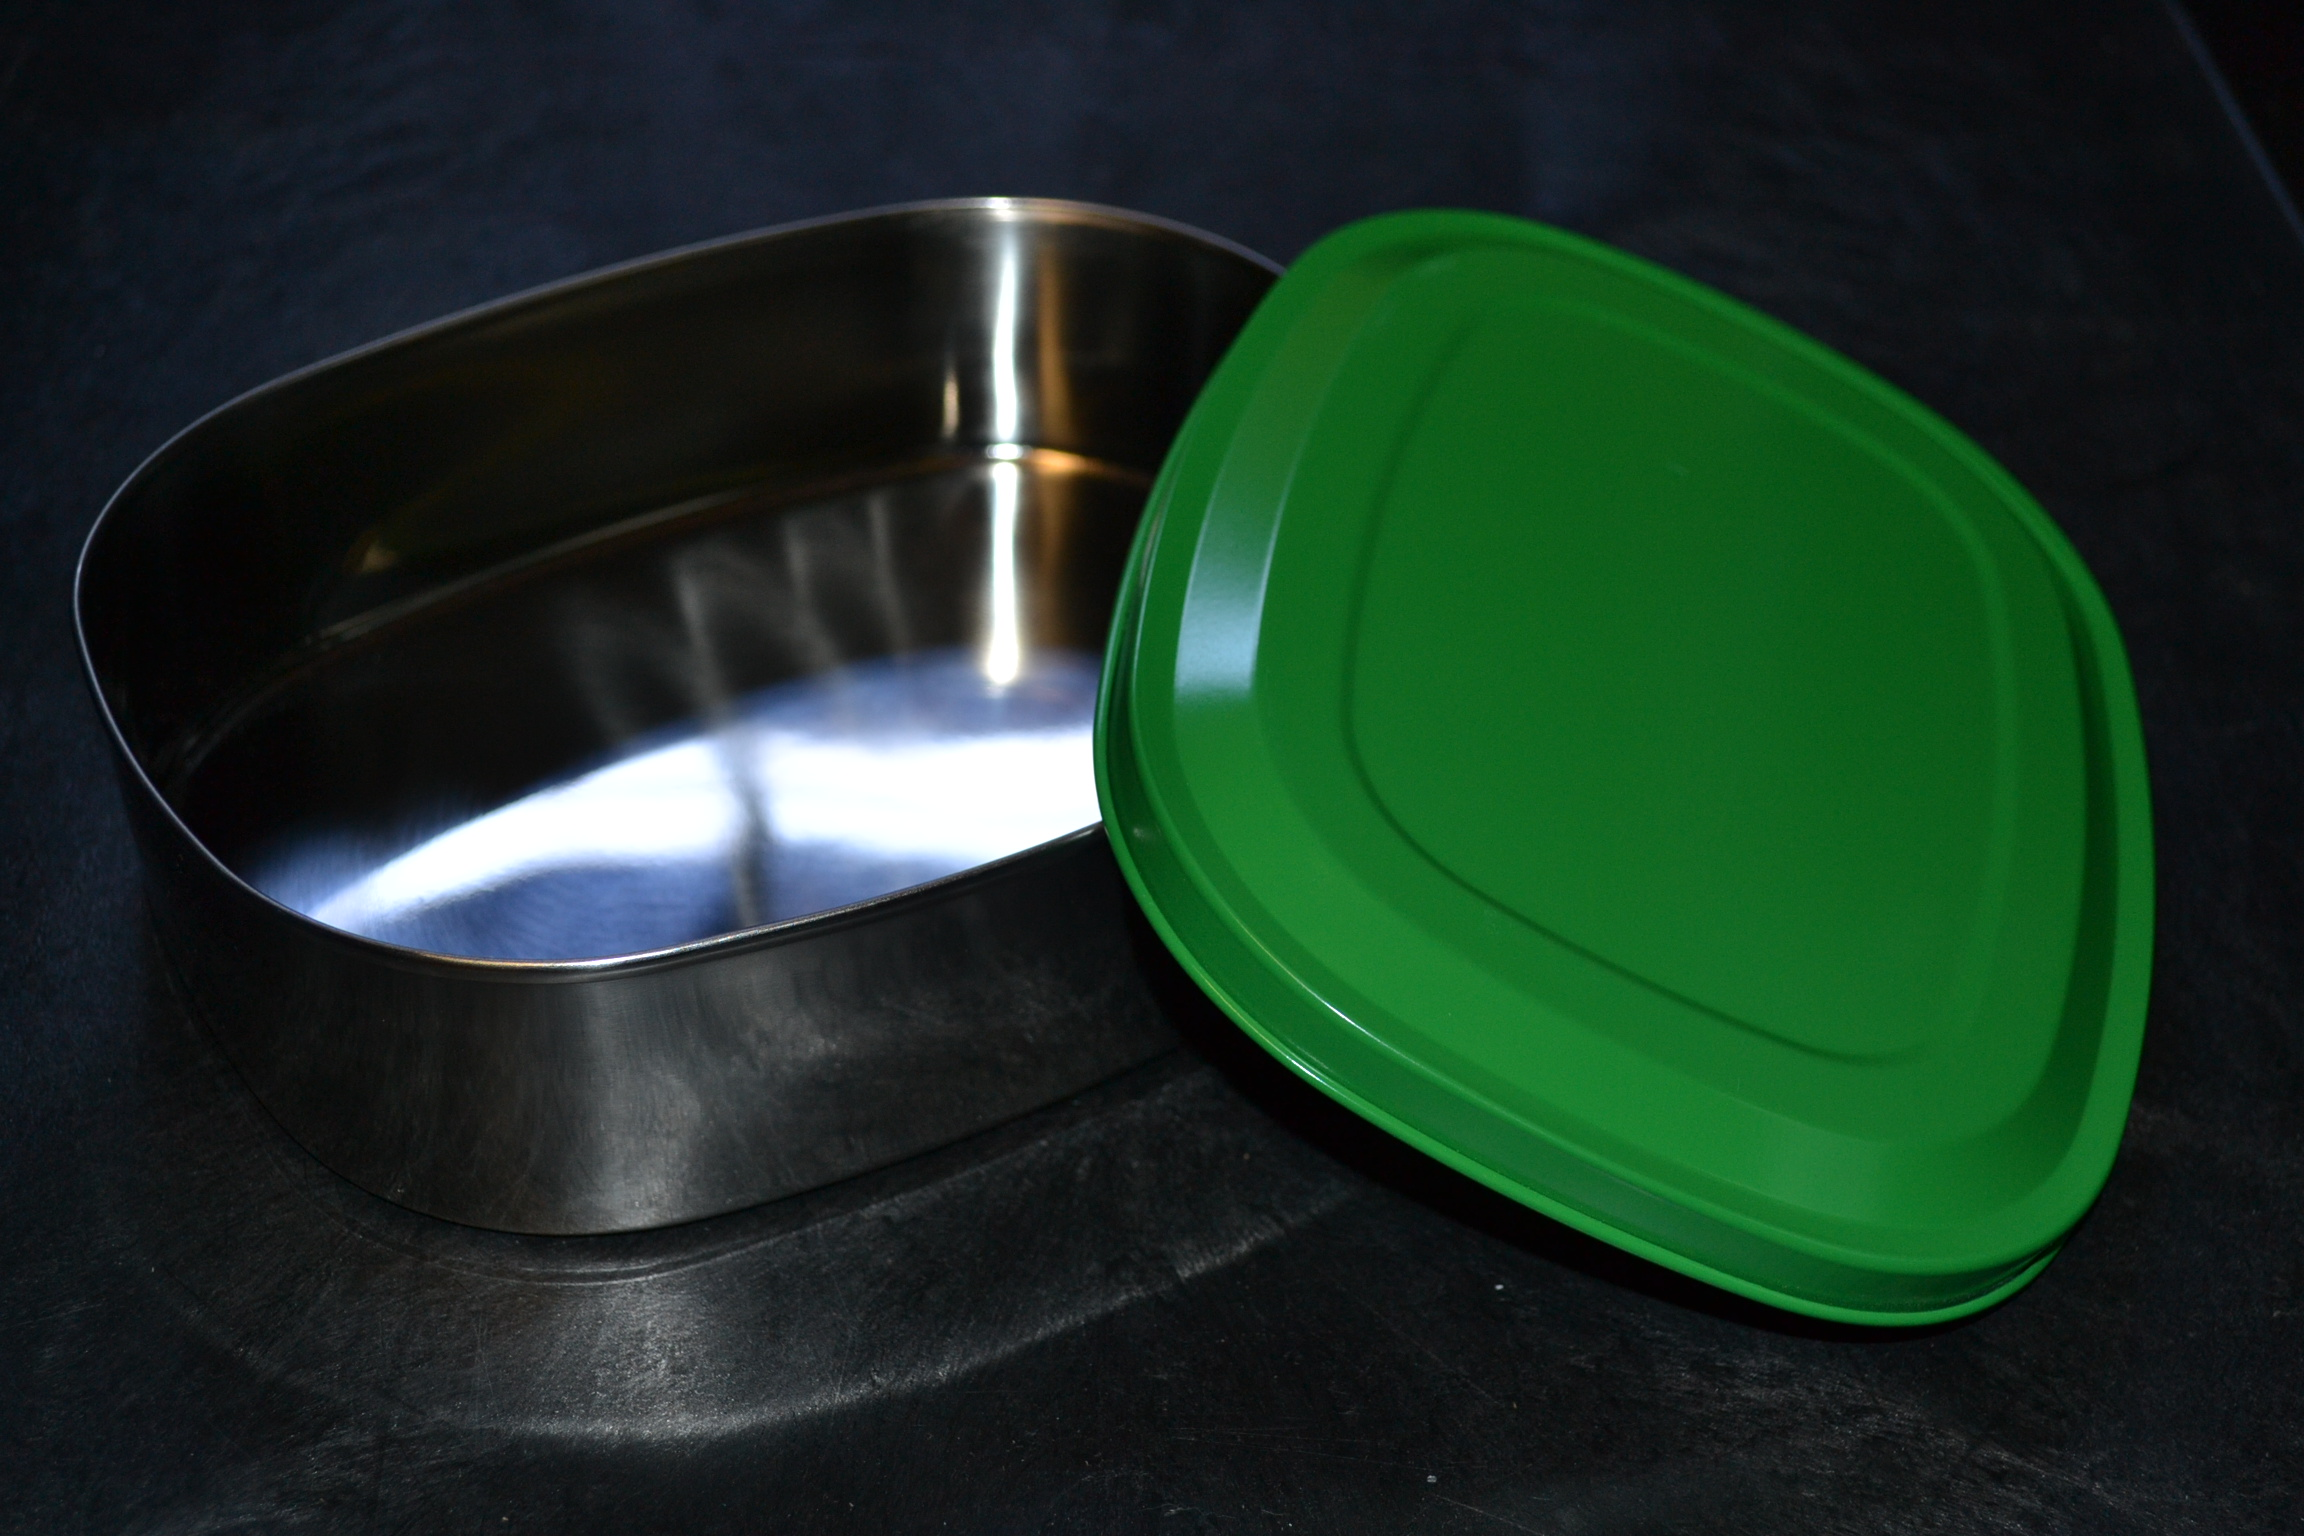 Stainless Steel Lunch-Safe Container Large Green